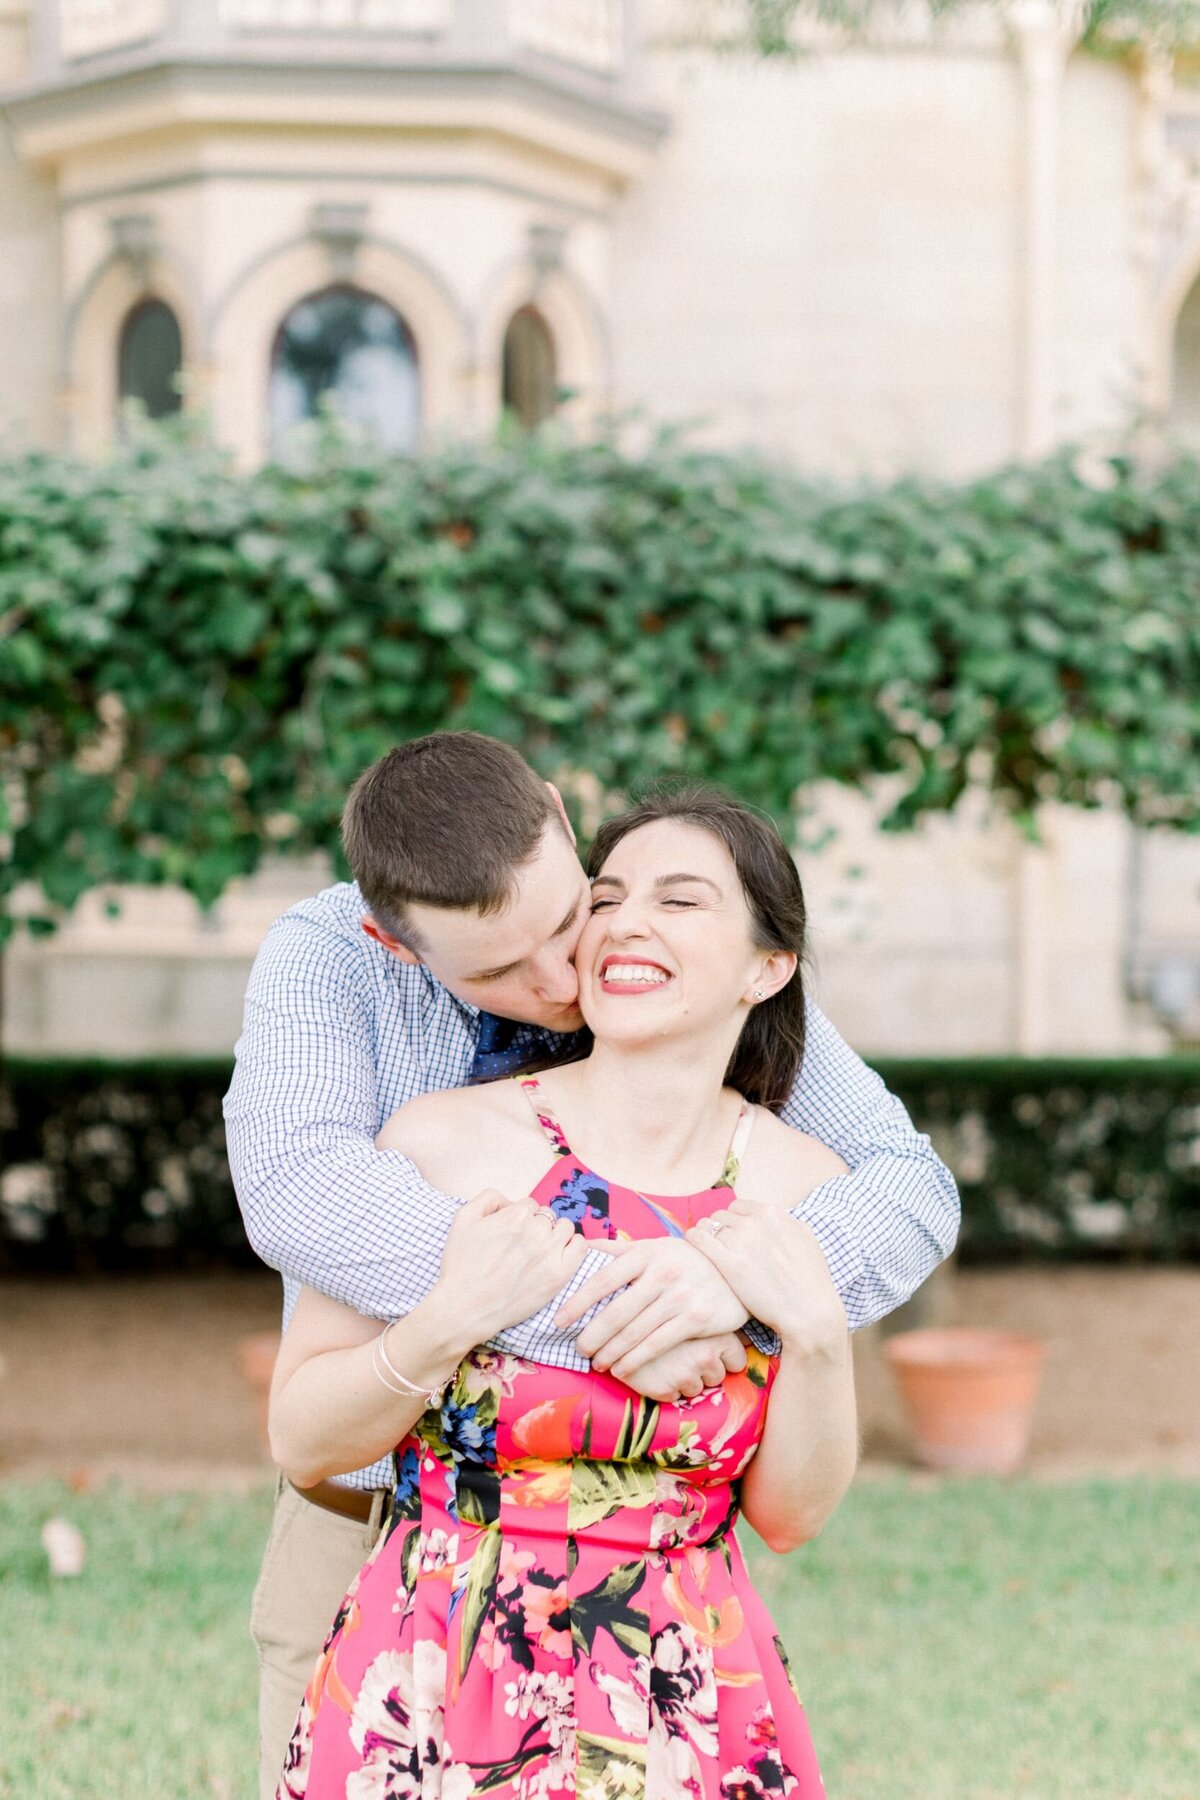 KingWilliamEngagement-AnnaKayPhotography-SanAntonioWeddingPhotographer-63